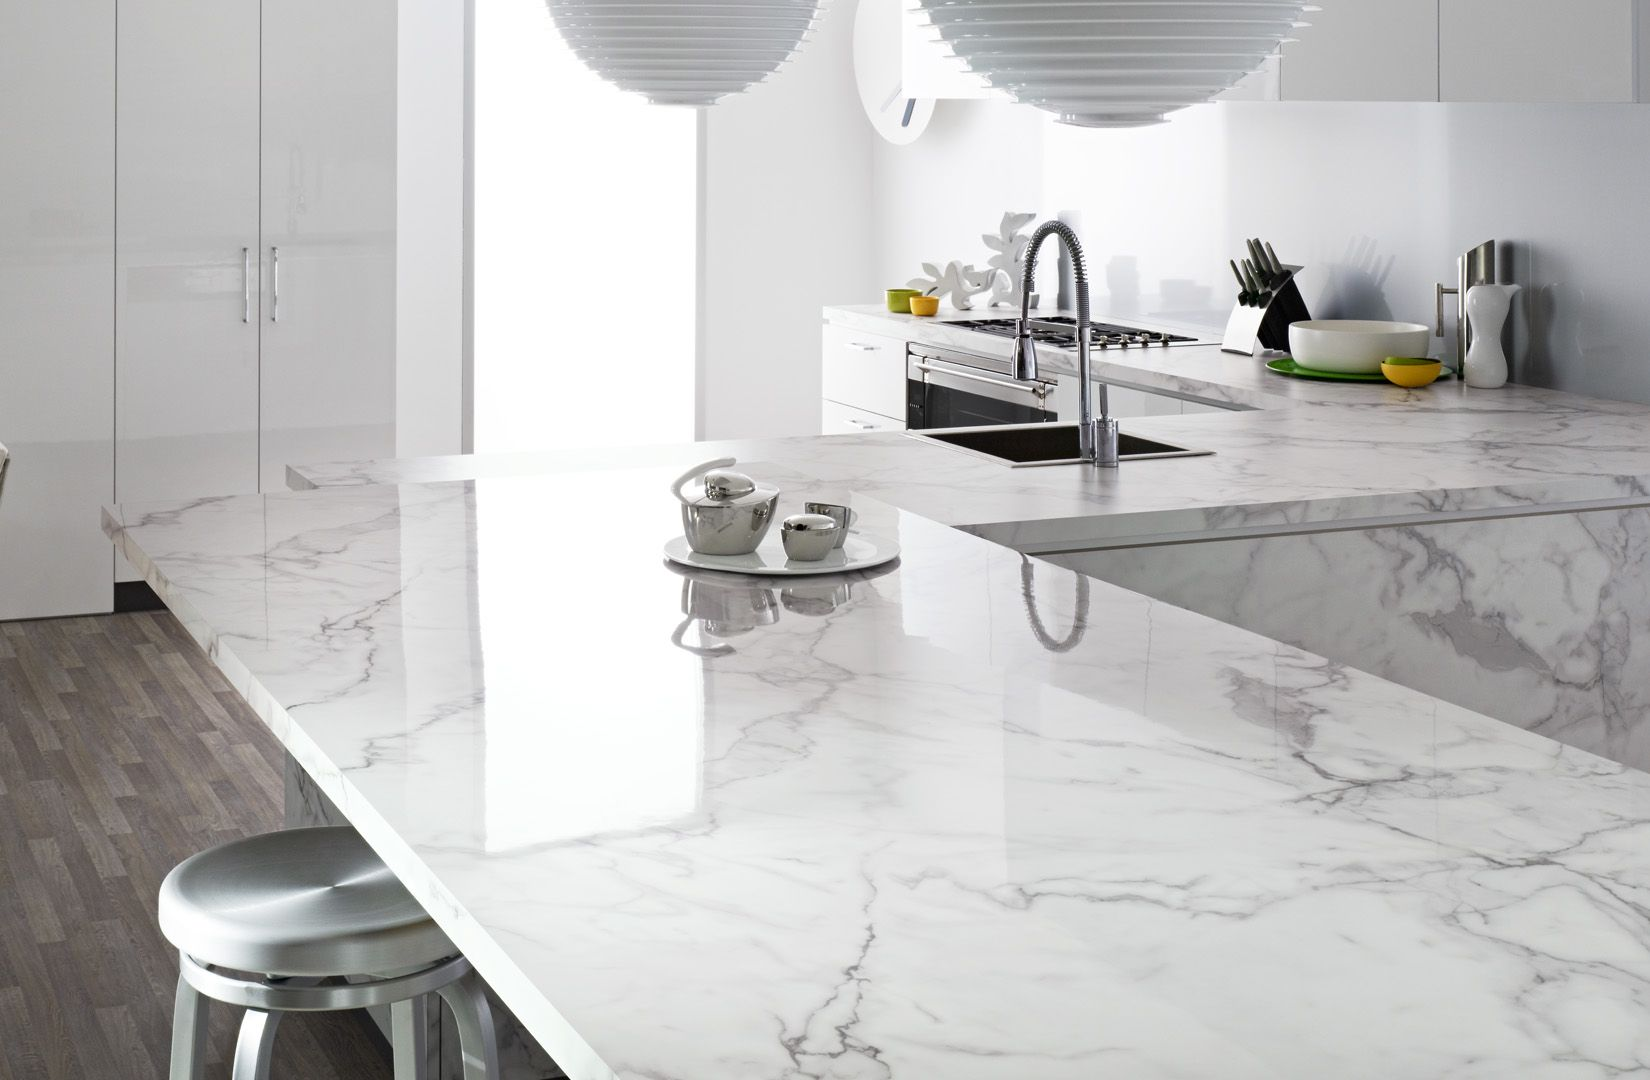 Laminex 180fx Carrara Marble Quartz Kitchen Countertops White